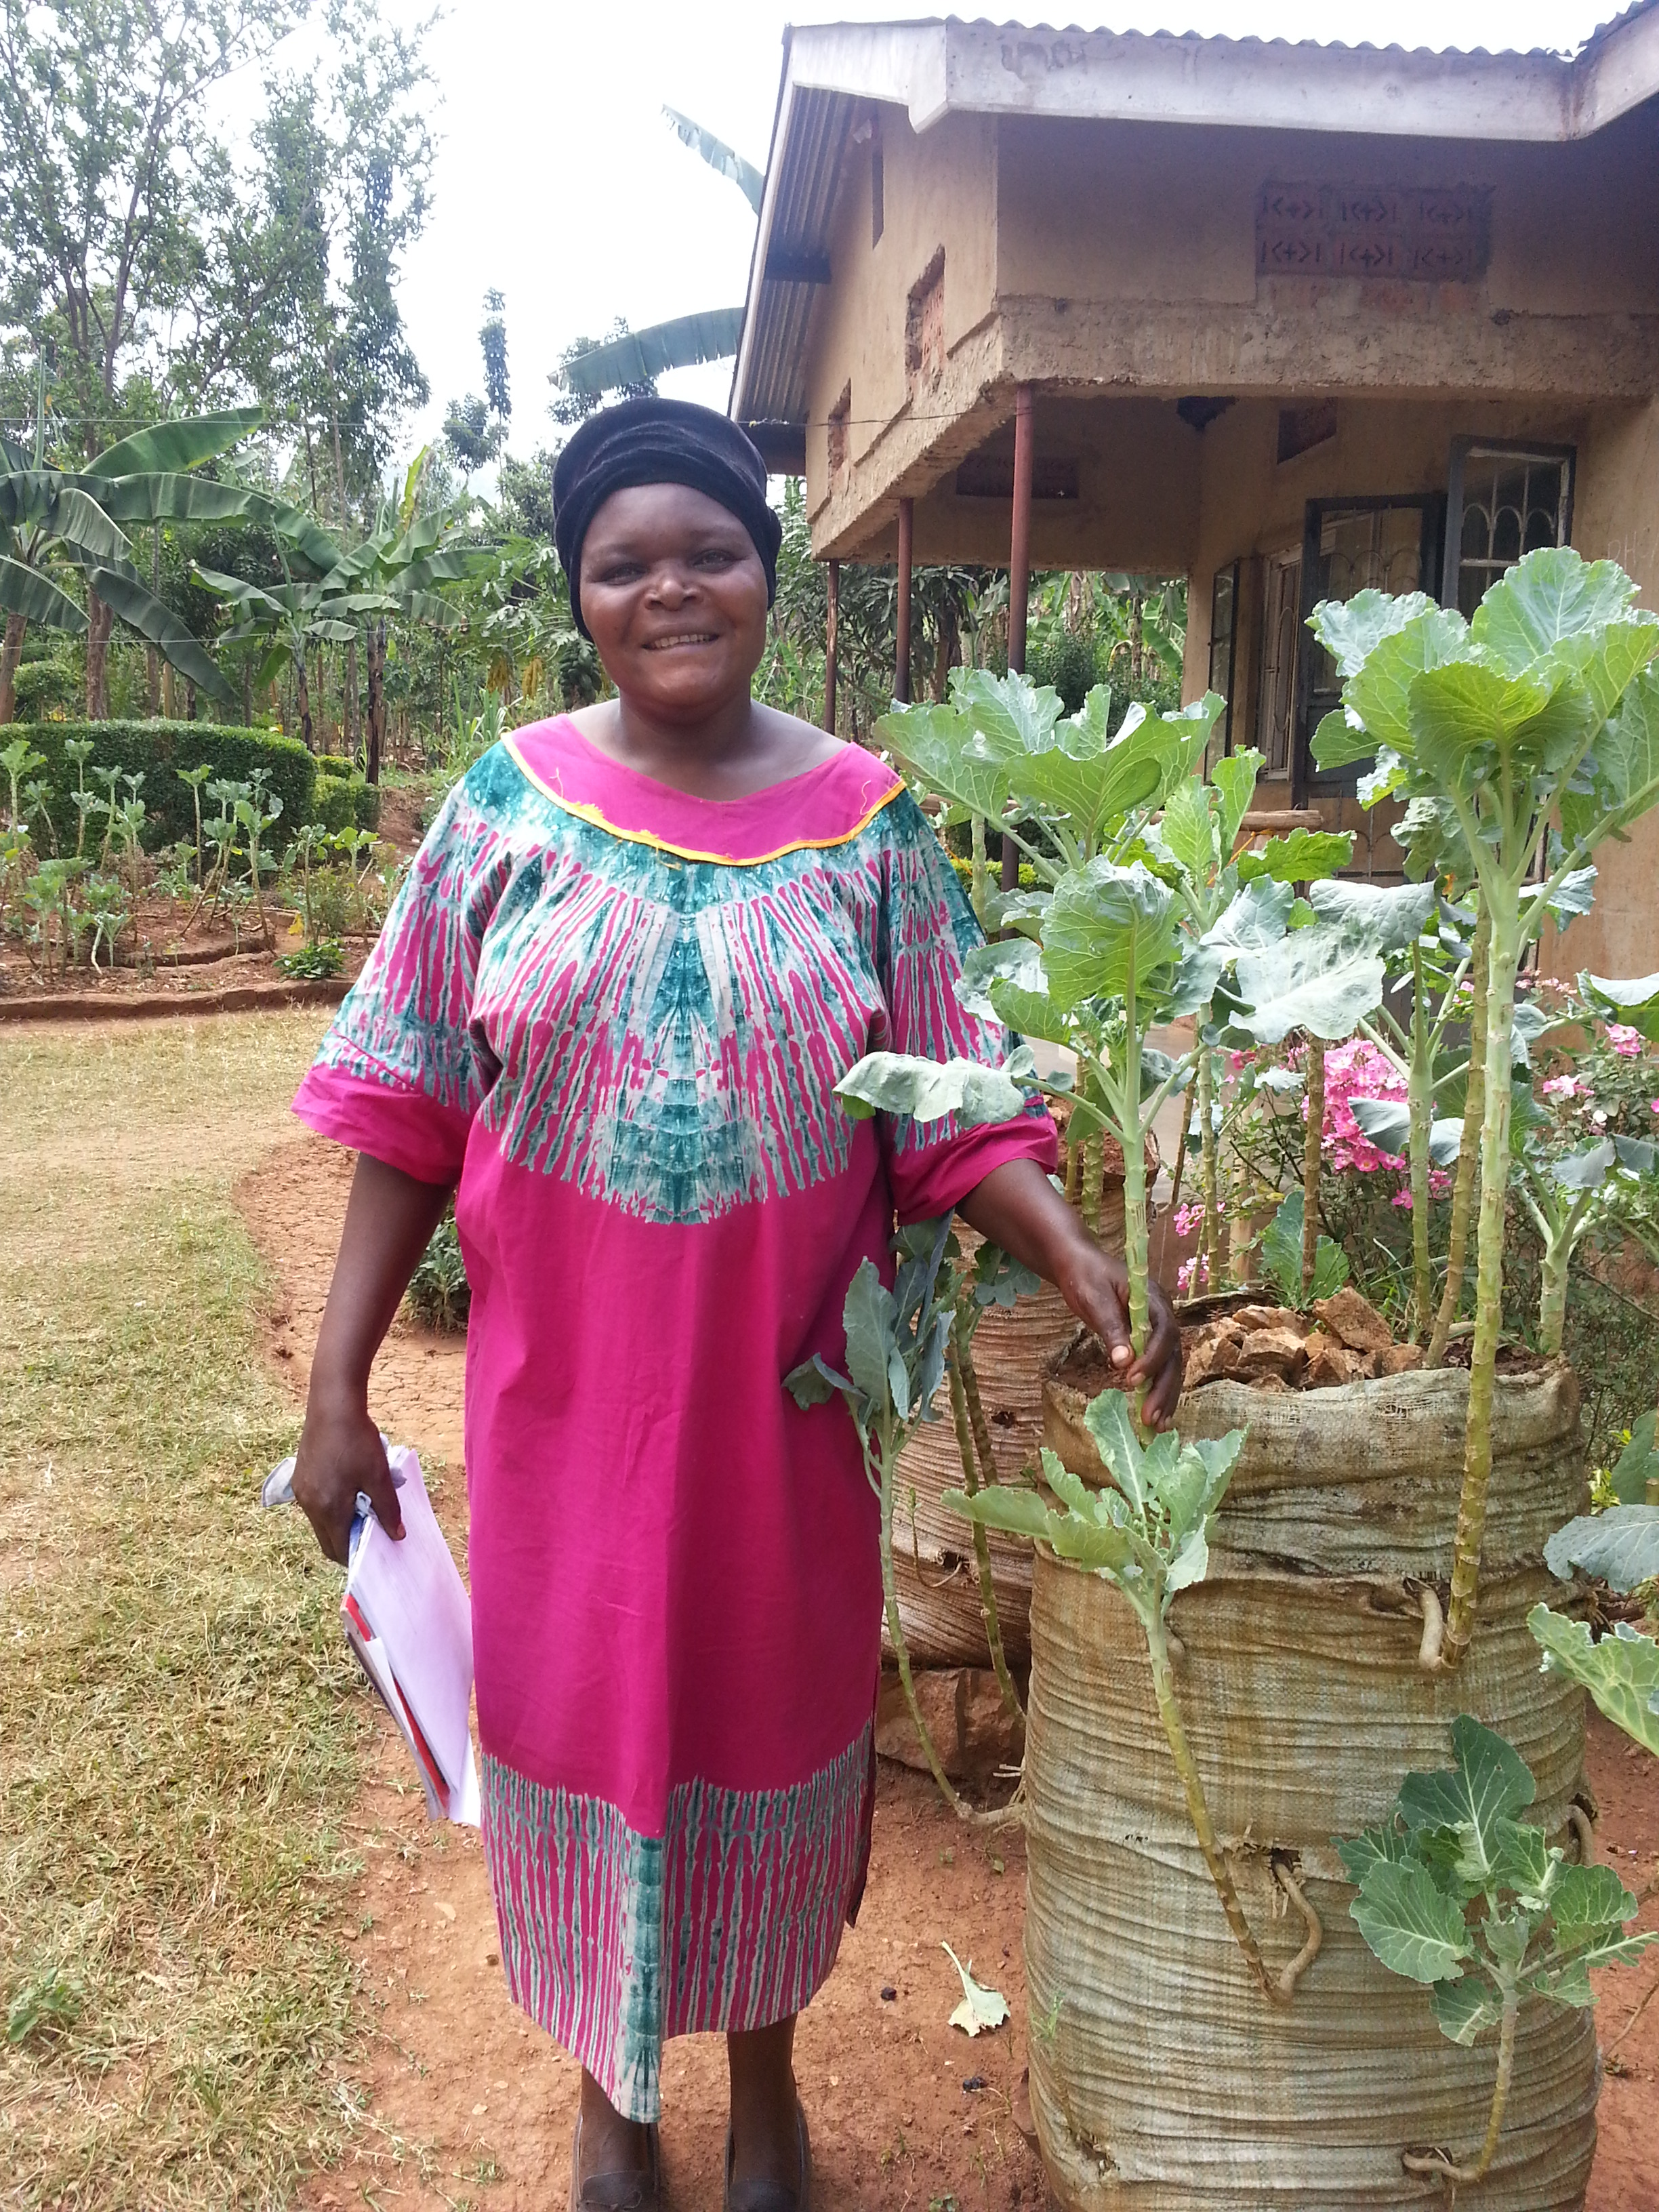 Pictured: Marguerite in Kenya with her water saving bag garden. Image credit: Send a Cow